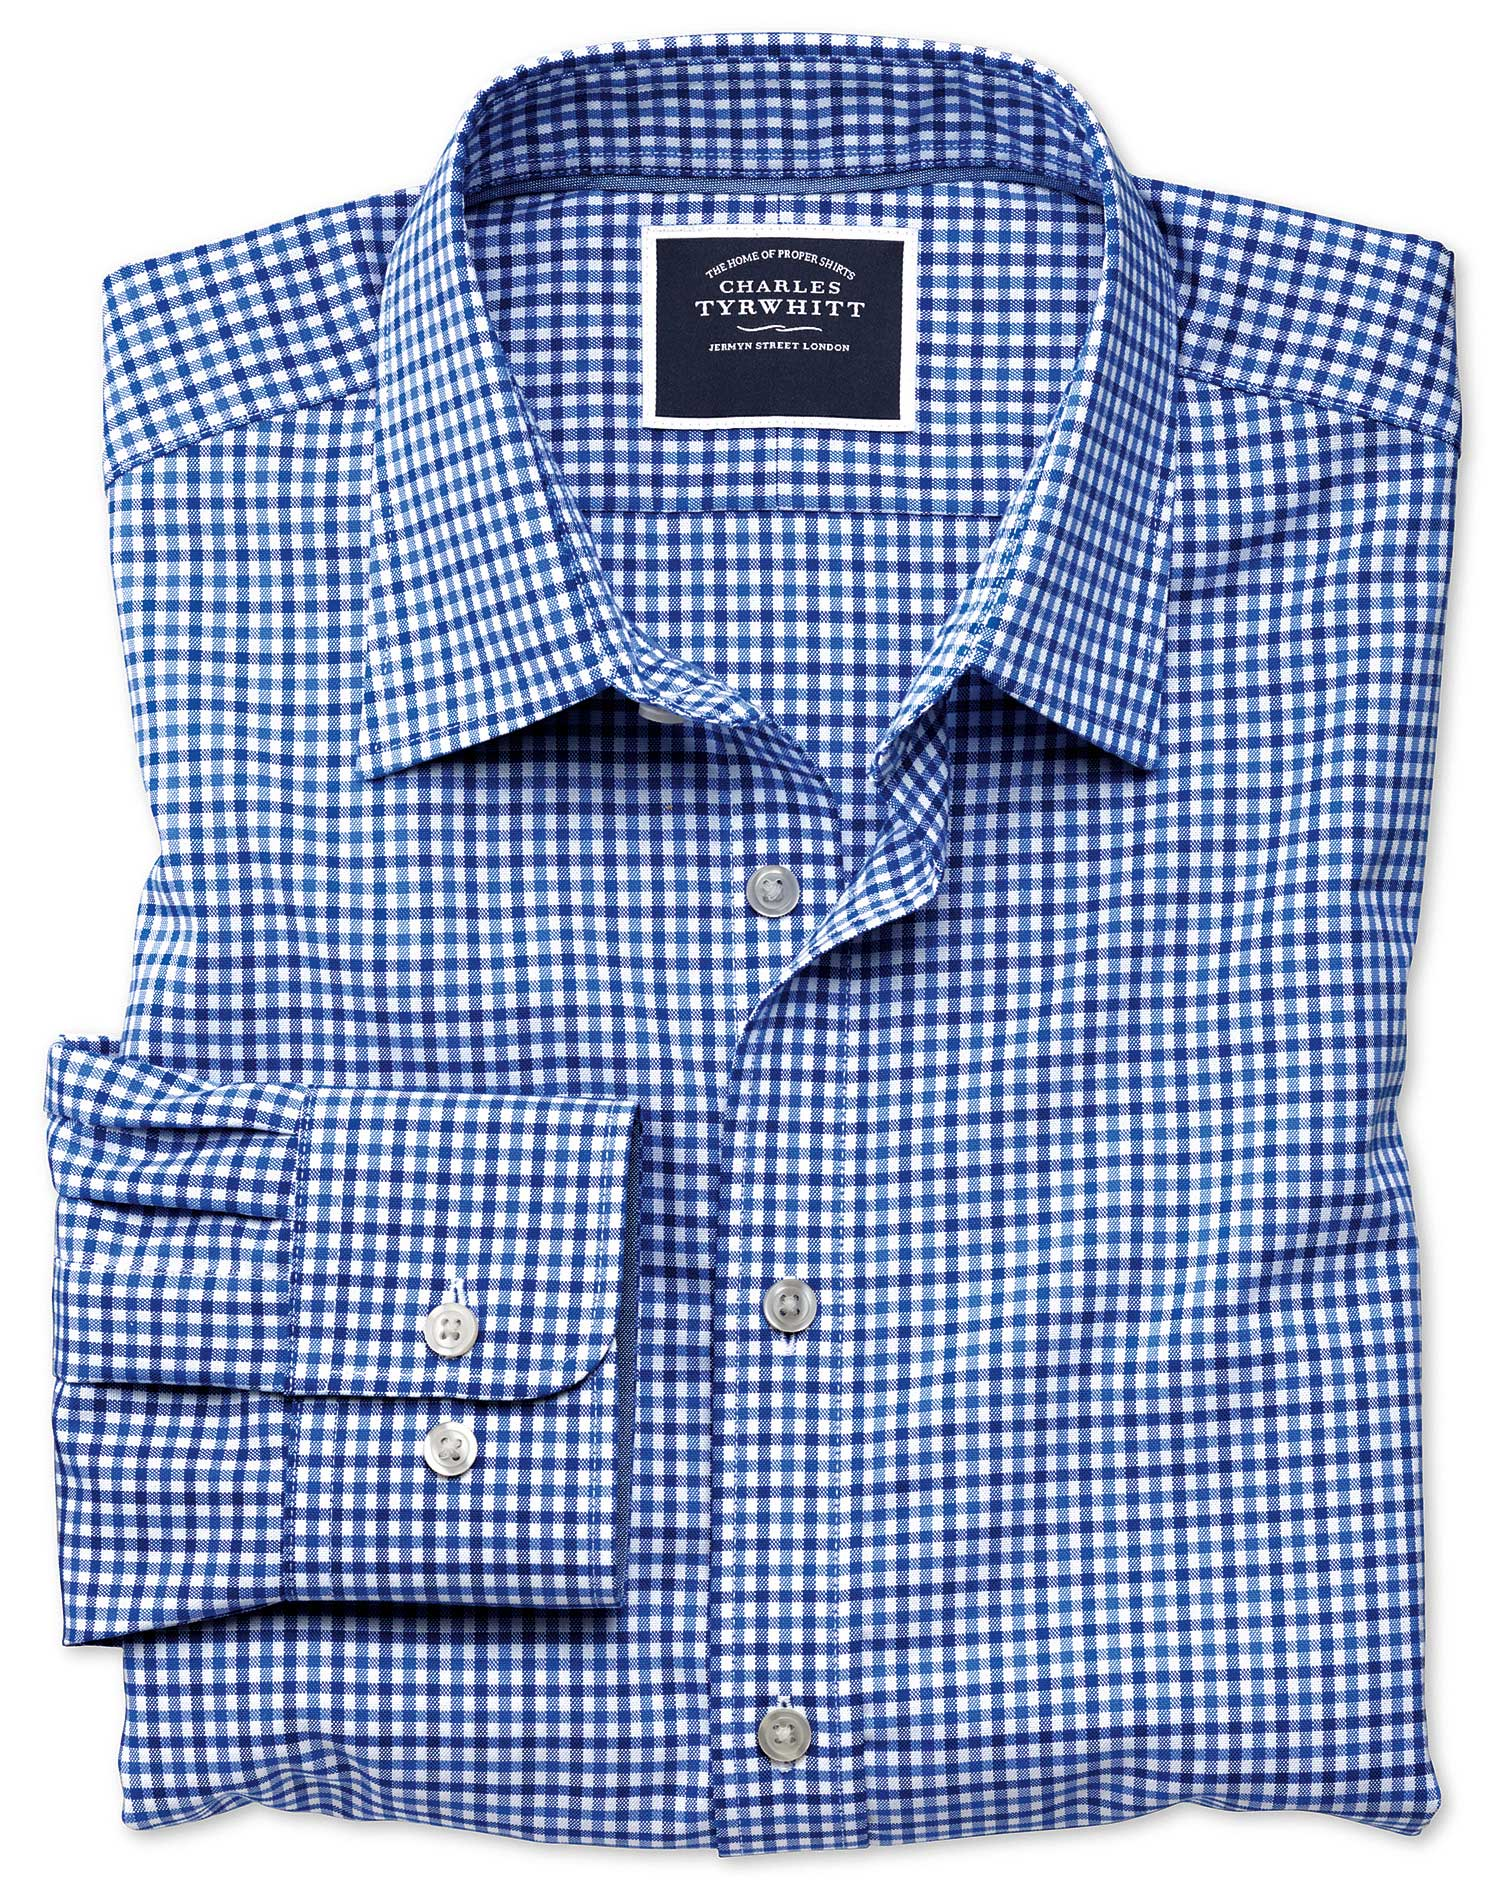 slim fit non-iron sky and blue gingham oxford cotton casual shirt single cuff size medium by charles tyrwhitt